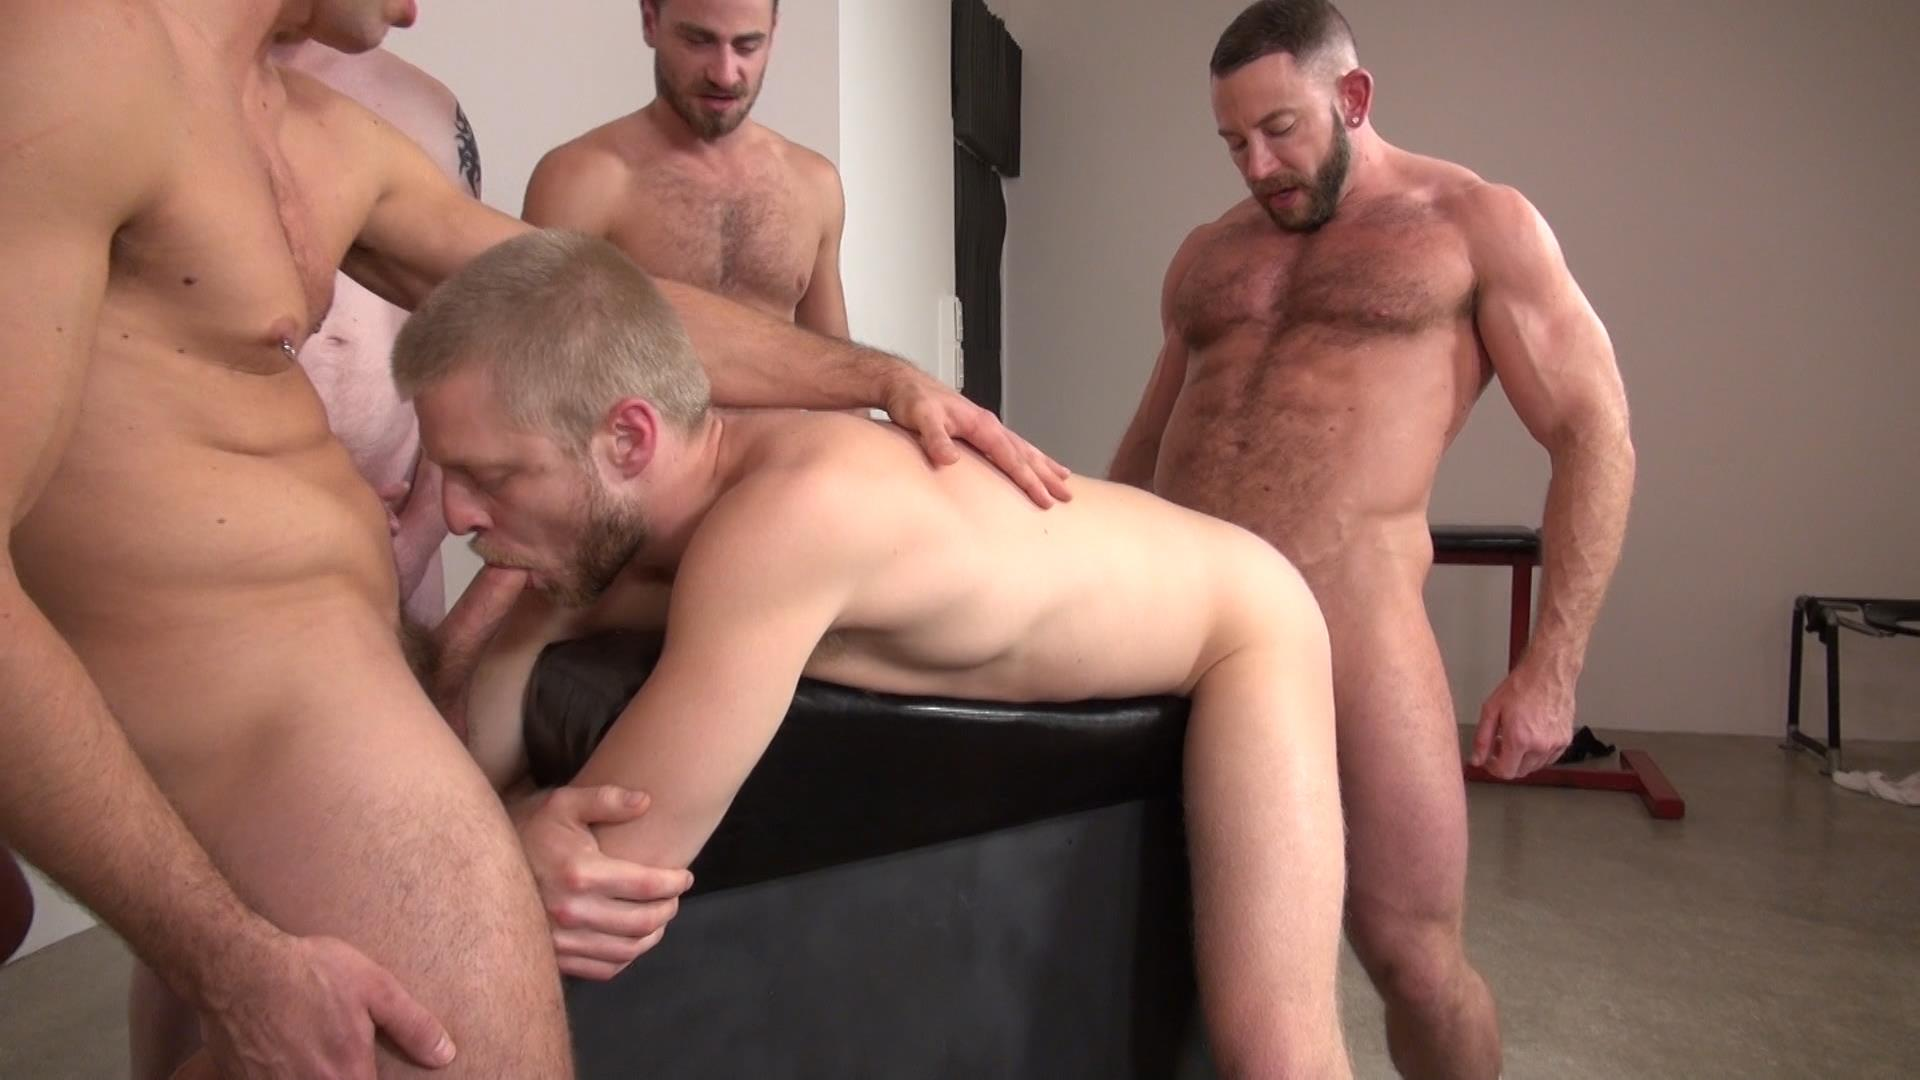 Free video clips of gay male sex orgies